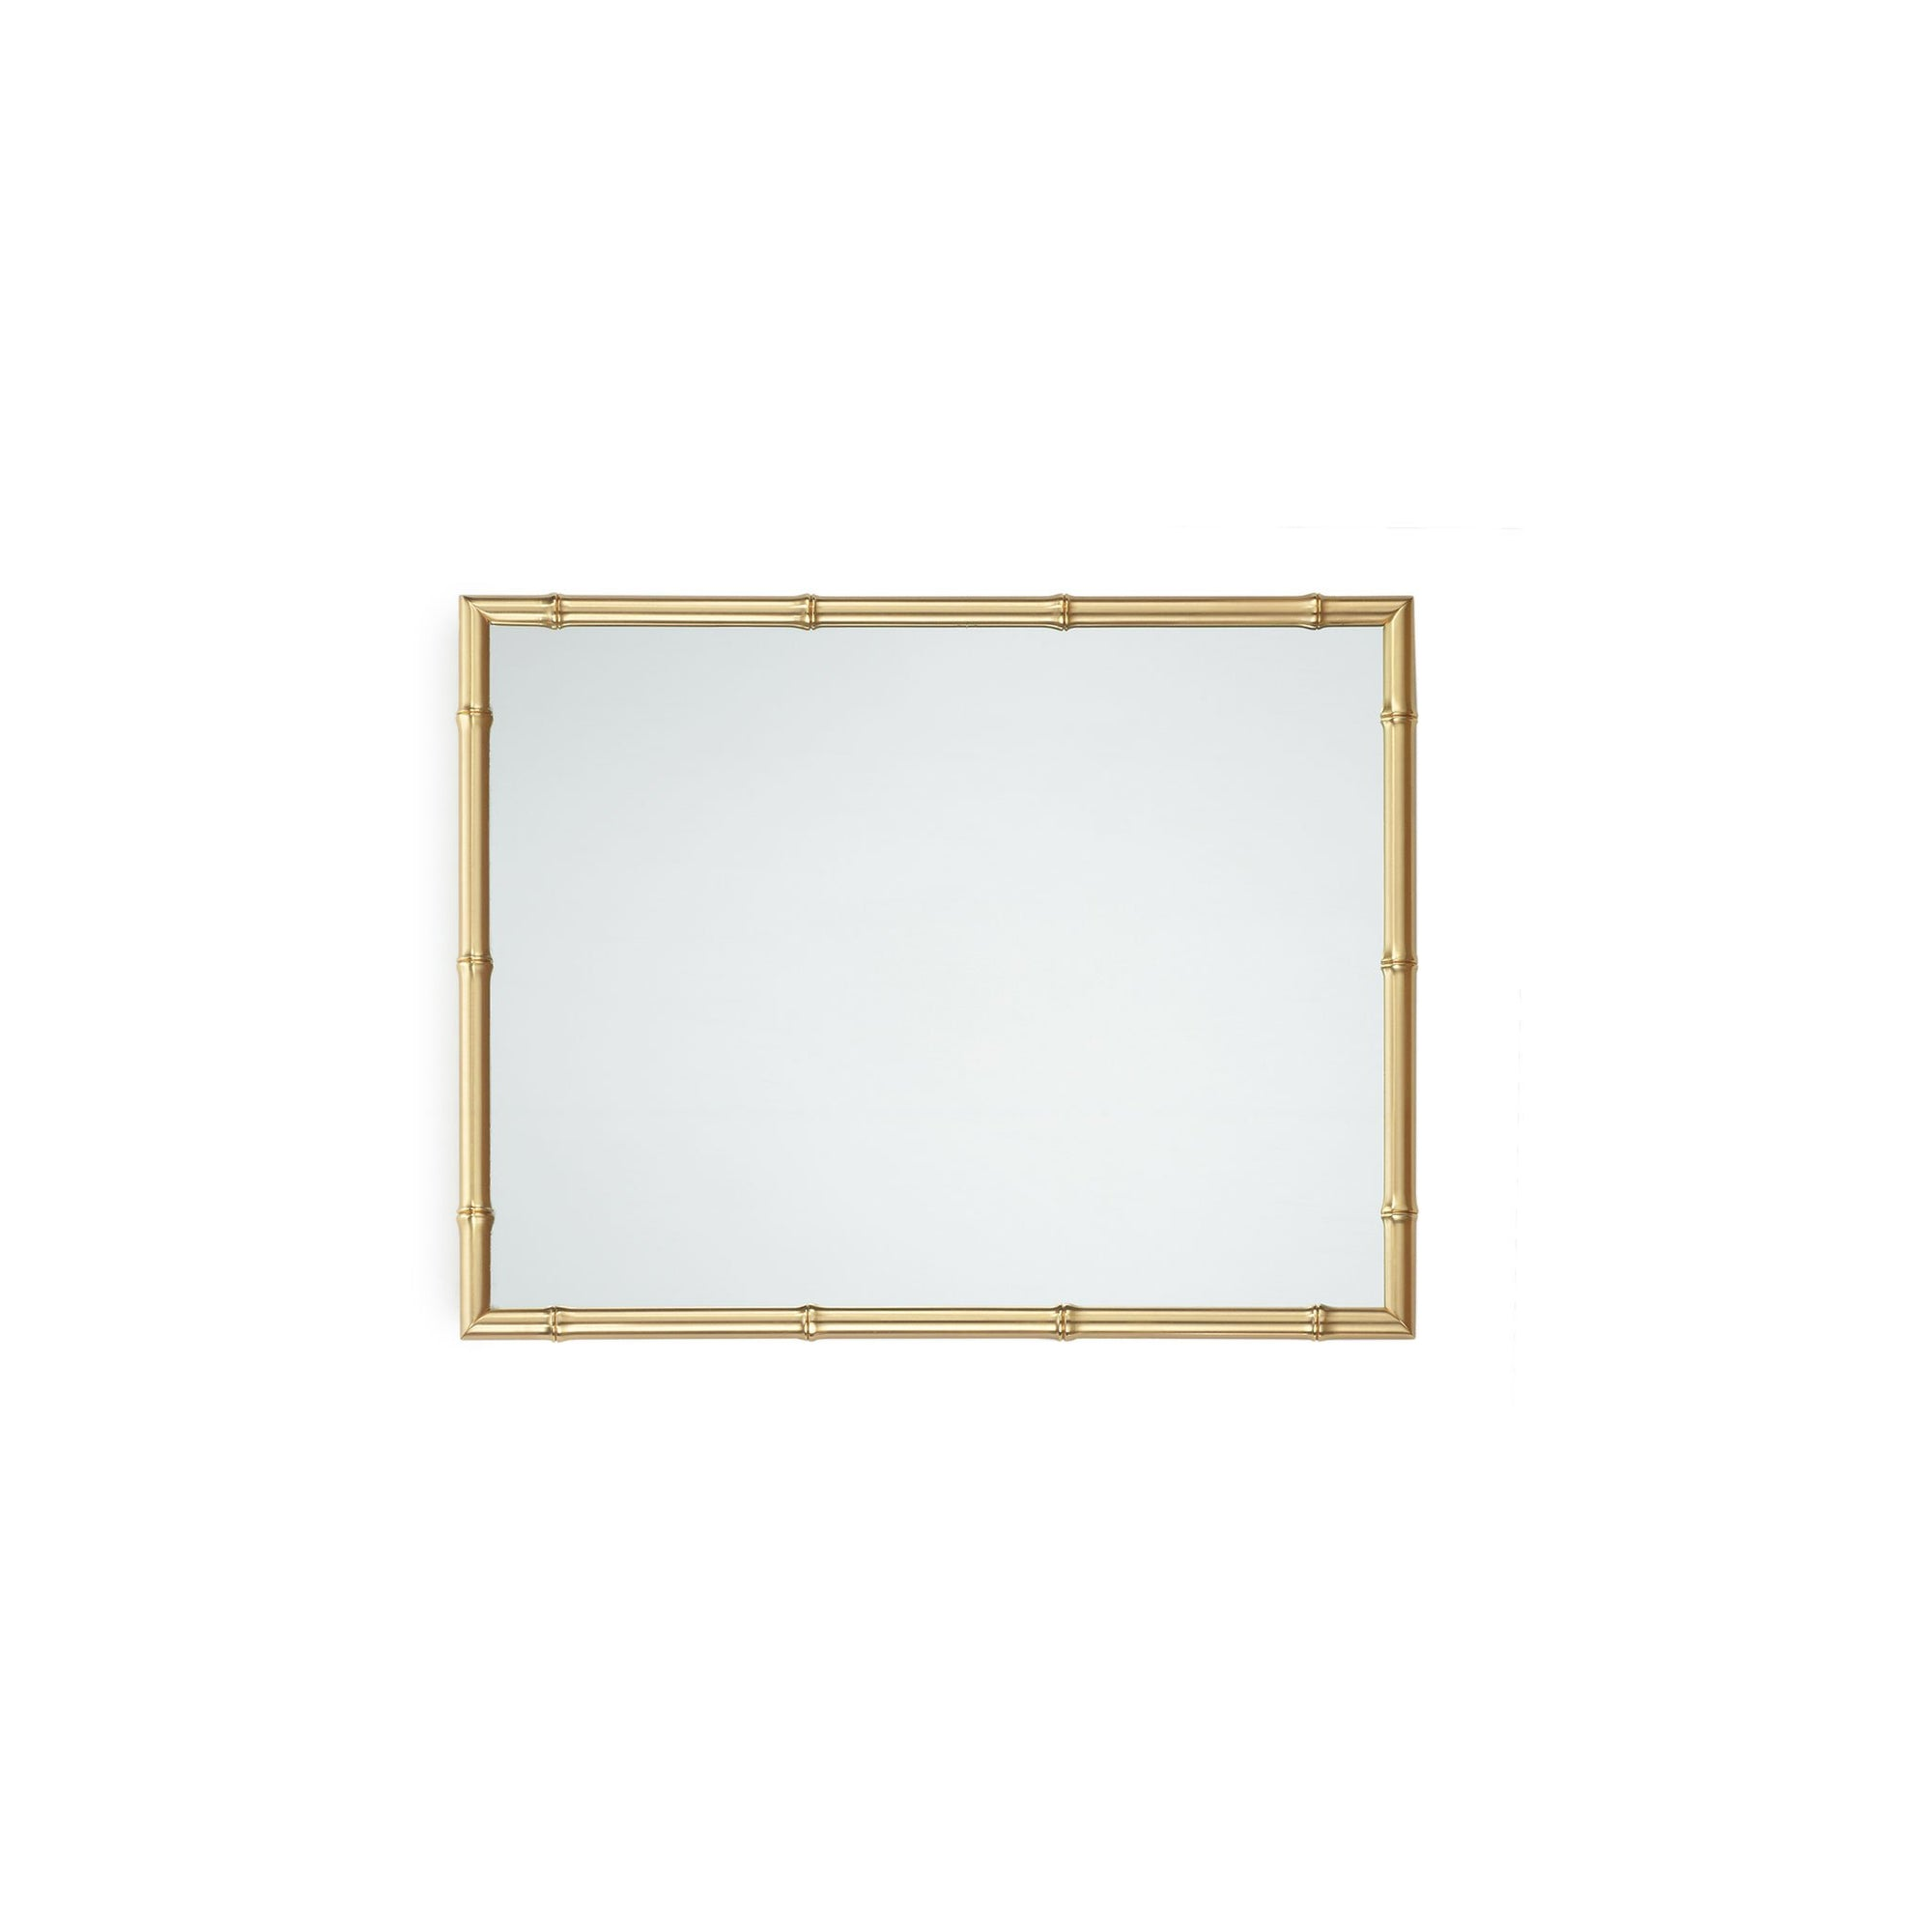 4251M21-GP Sherle Wagner International Bamboo Mirror in Gold Plate metal finish